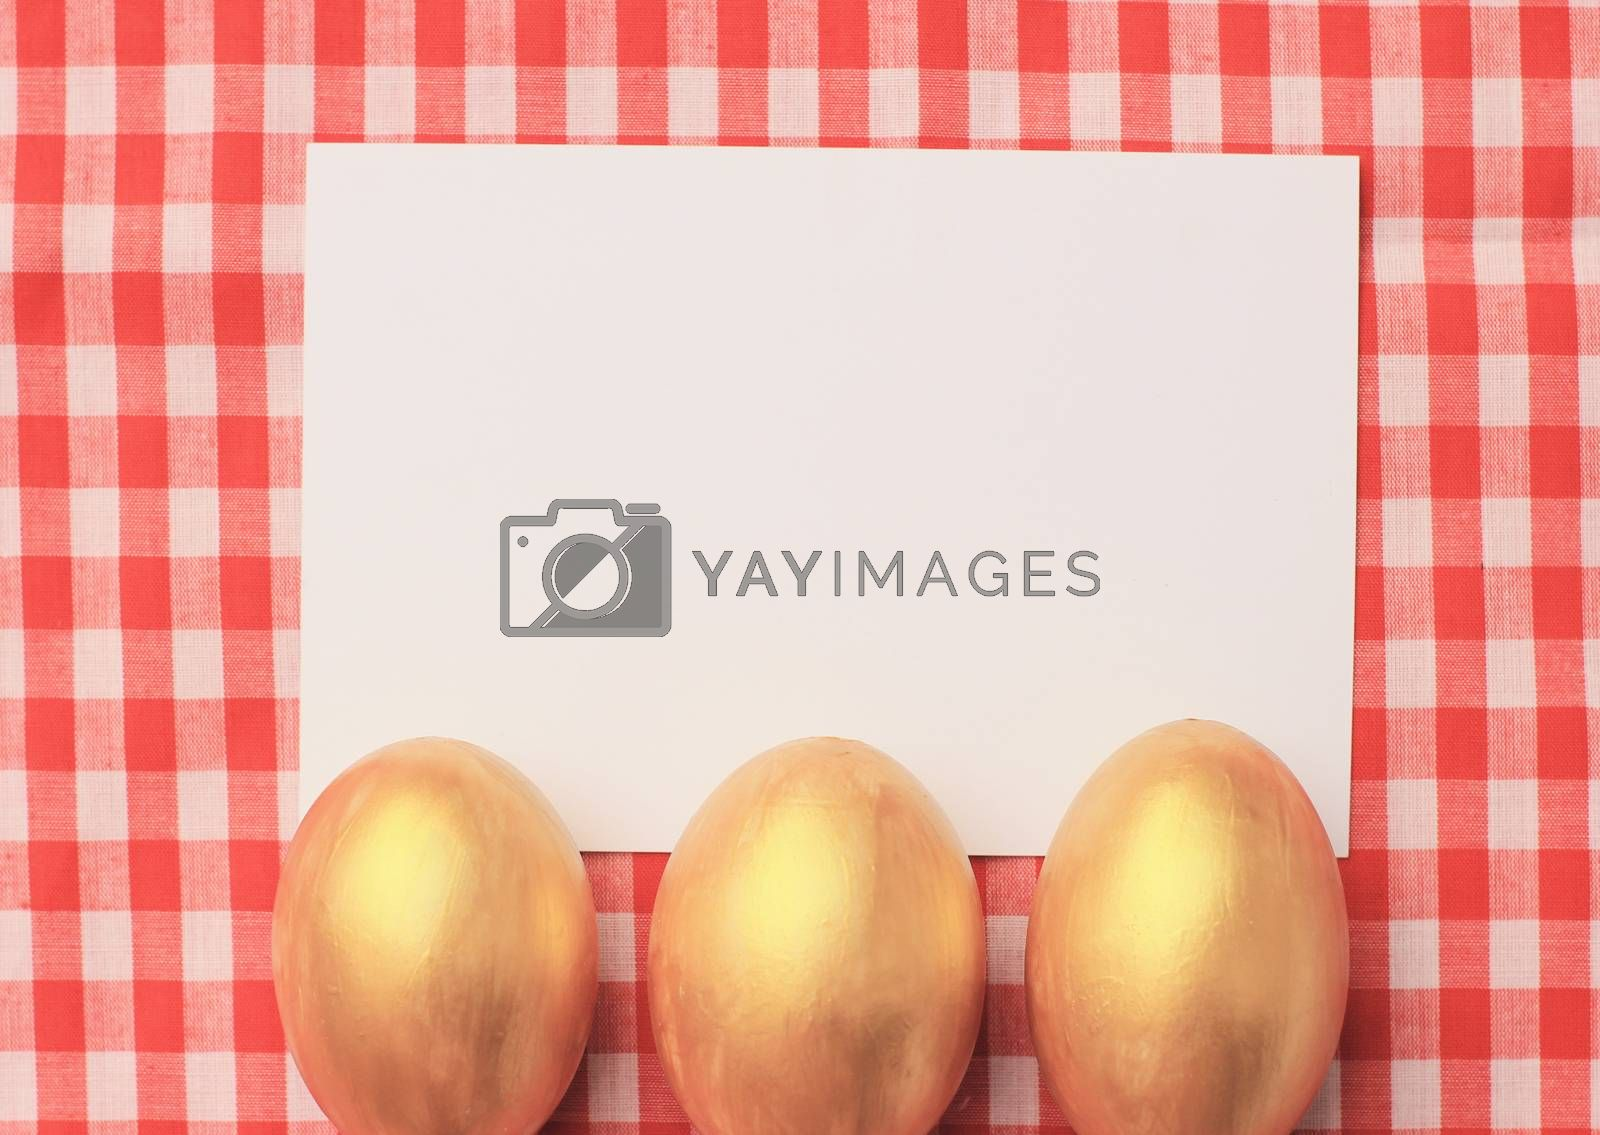 Royalty free image of Golden easter eggs on red checkered tablecloth background with b by nuchylee